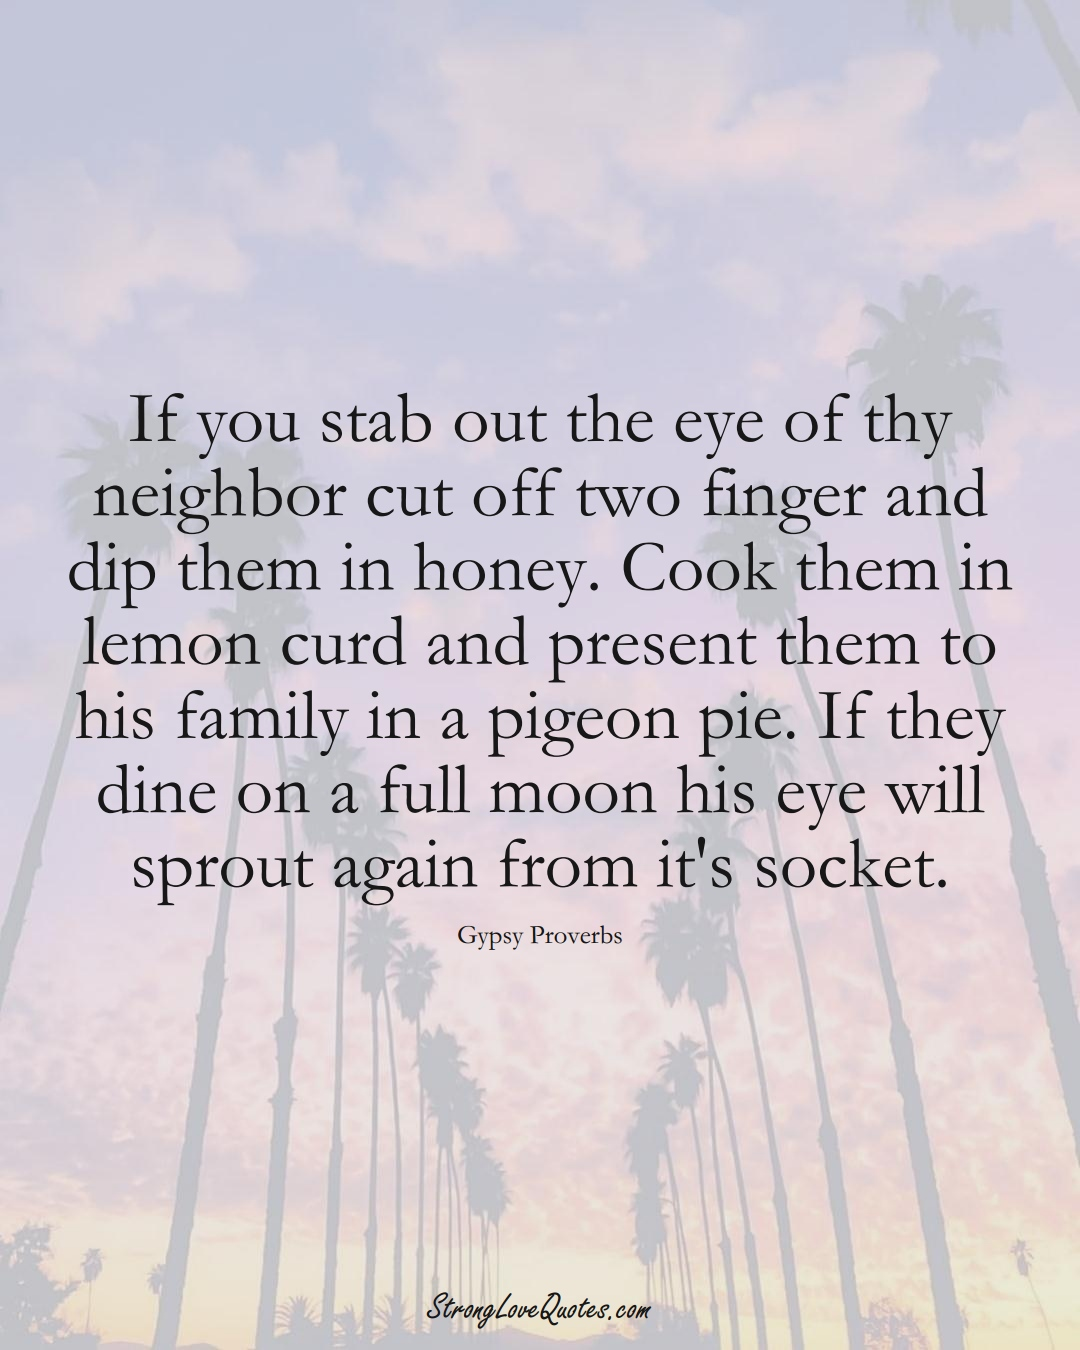 If you stab out the eye of thy neighbor cut off two finger and dip them in honey. Cook them in lemon curd and present them to his family in a pigeon pie. If they dine on a full moon his eye will sprout again from it's socket. (Gypsy Sayings);  #aVarietyofCulturesSayings